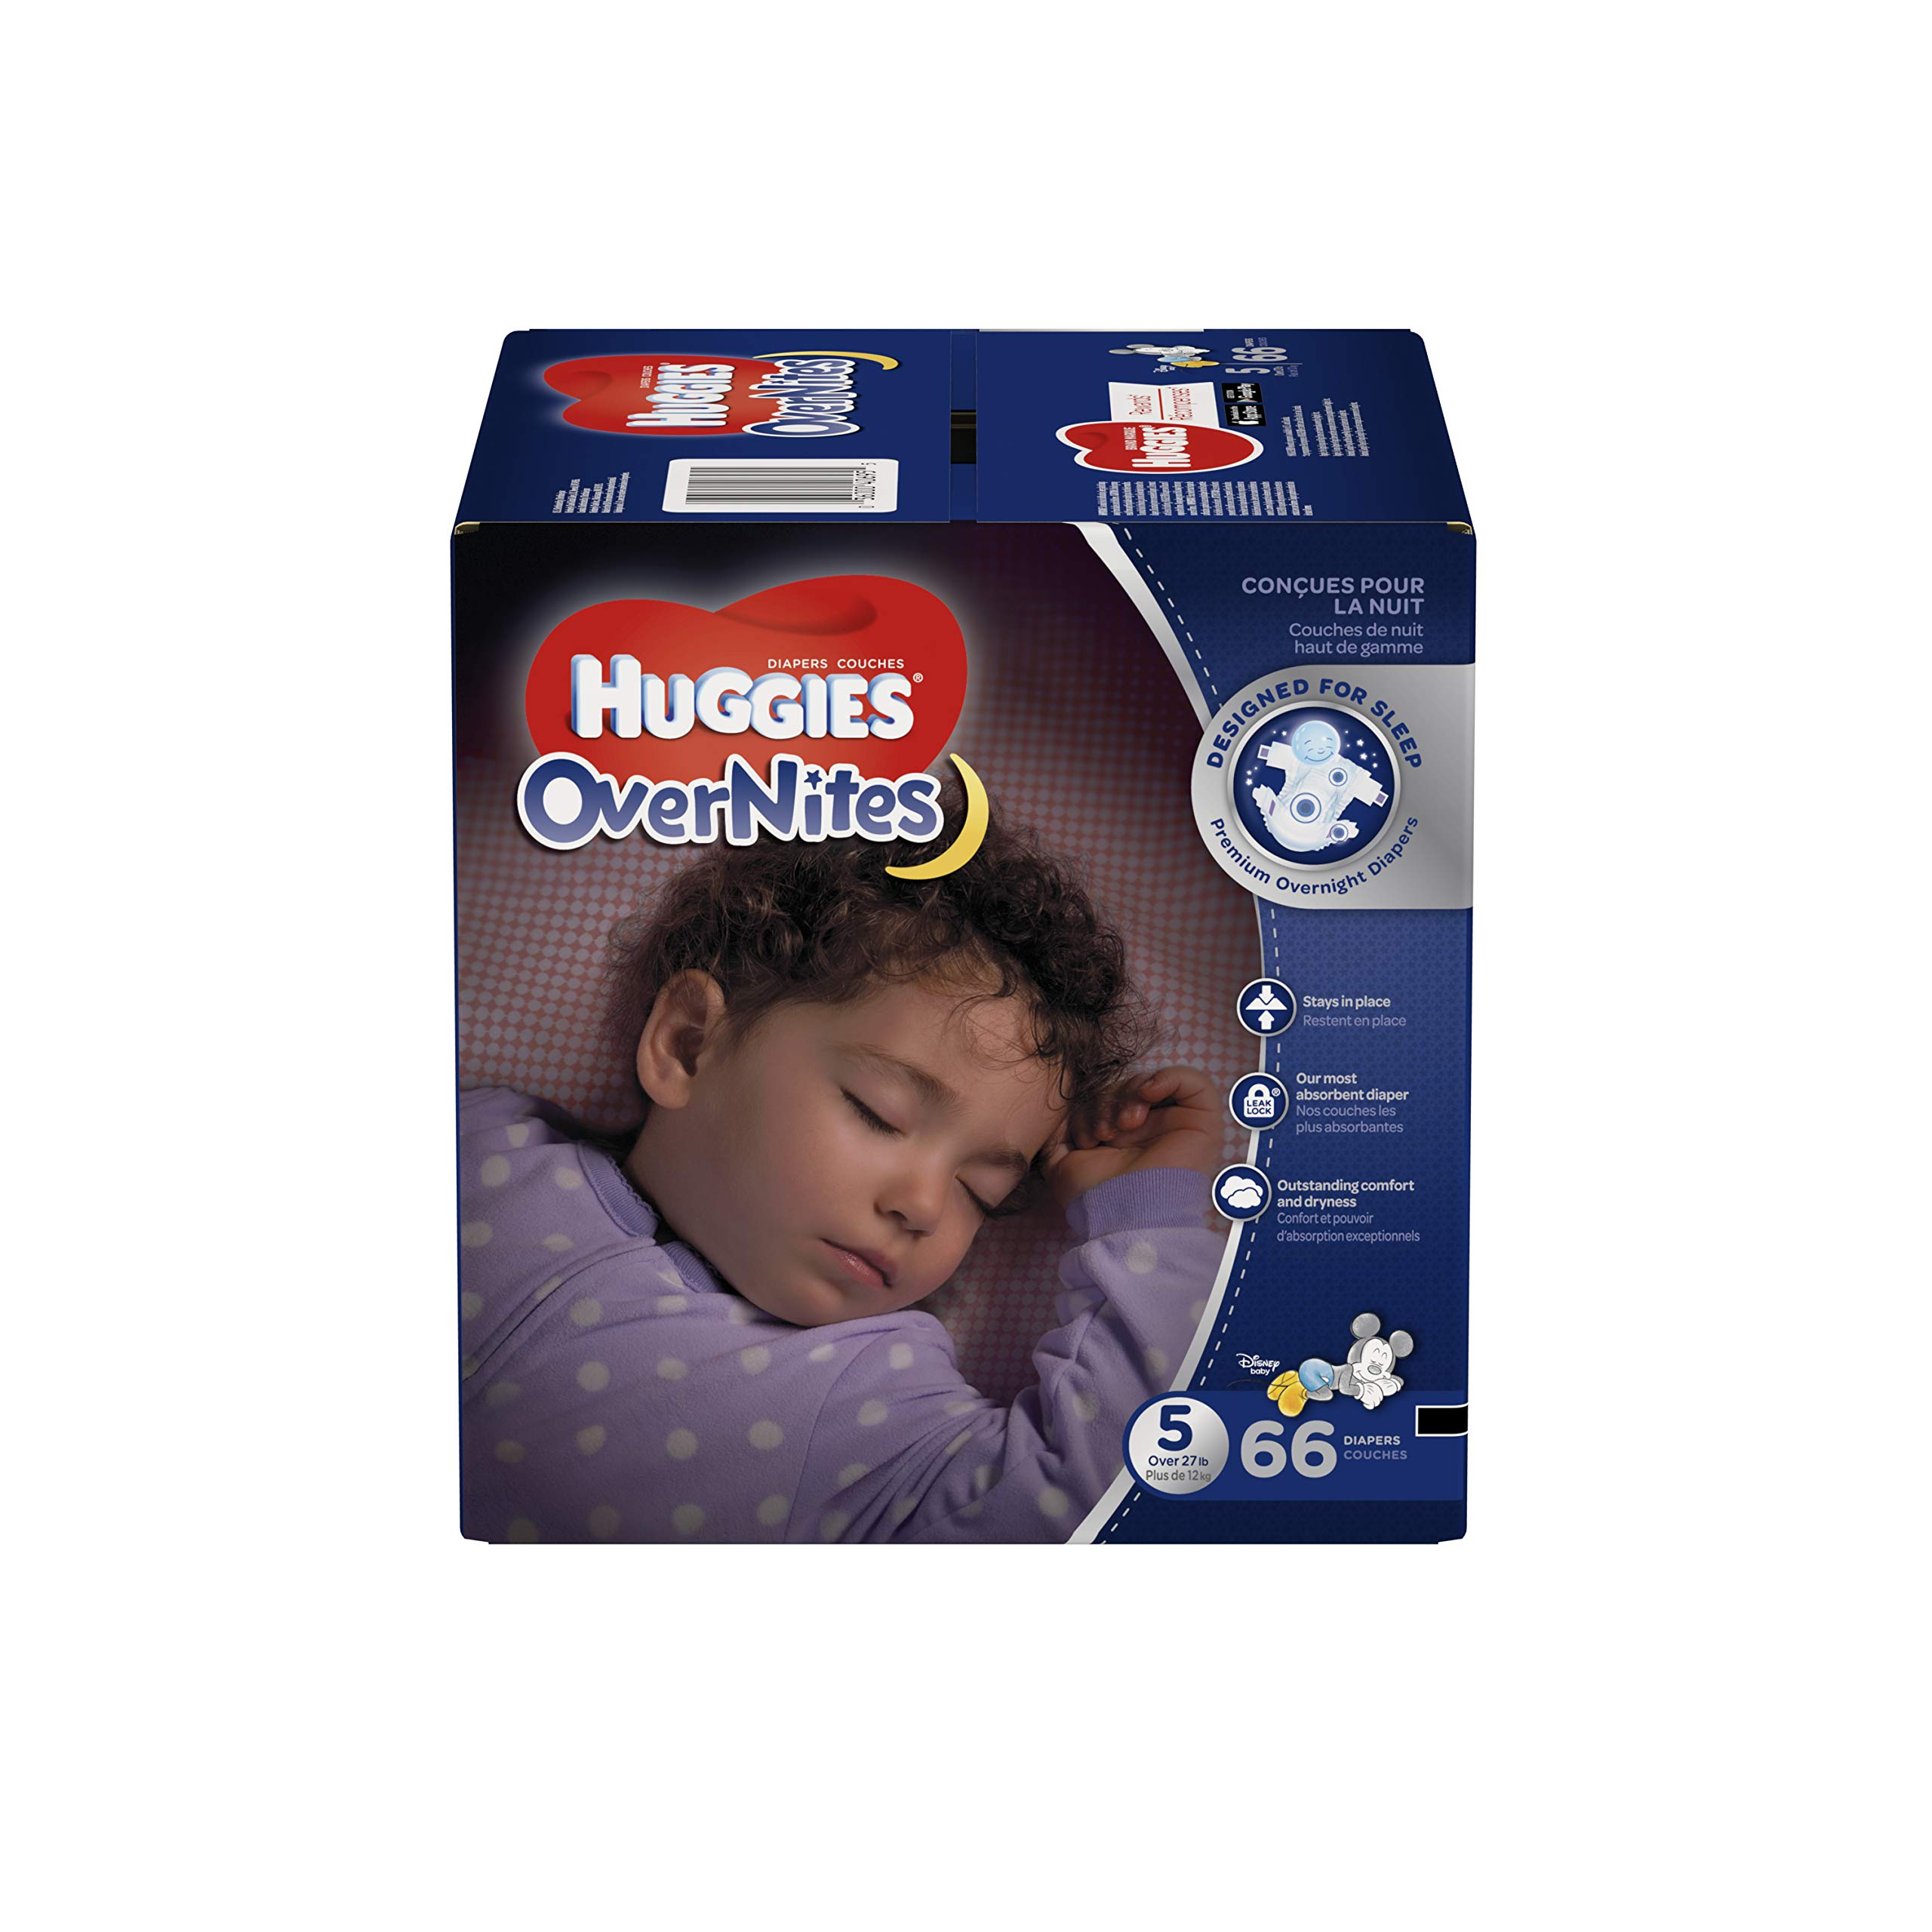 27+ lb. Economy Plus Pack Size 5 HUGGIES Little Movers Diapers 124 Ct